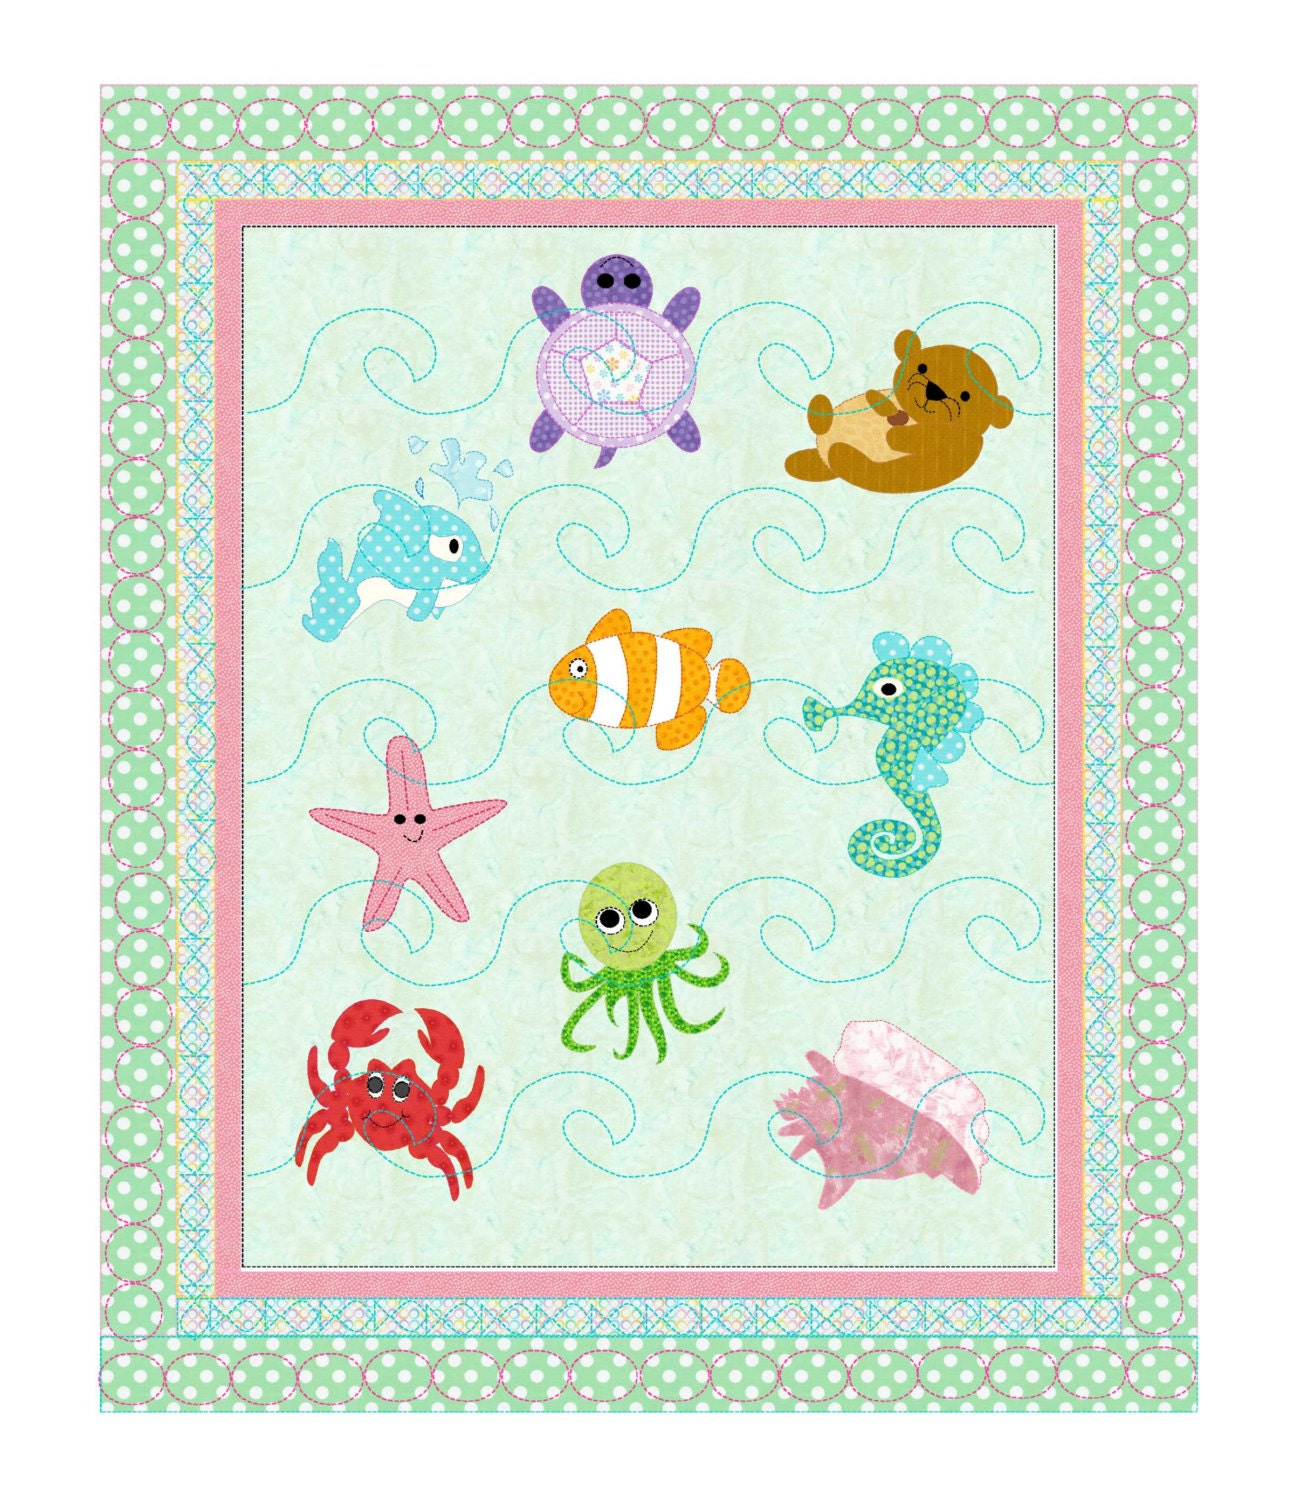 Baby Girl or Boys'Quilt Pattern Under the Sea from KinderGardenDesigns on Etsy Studio